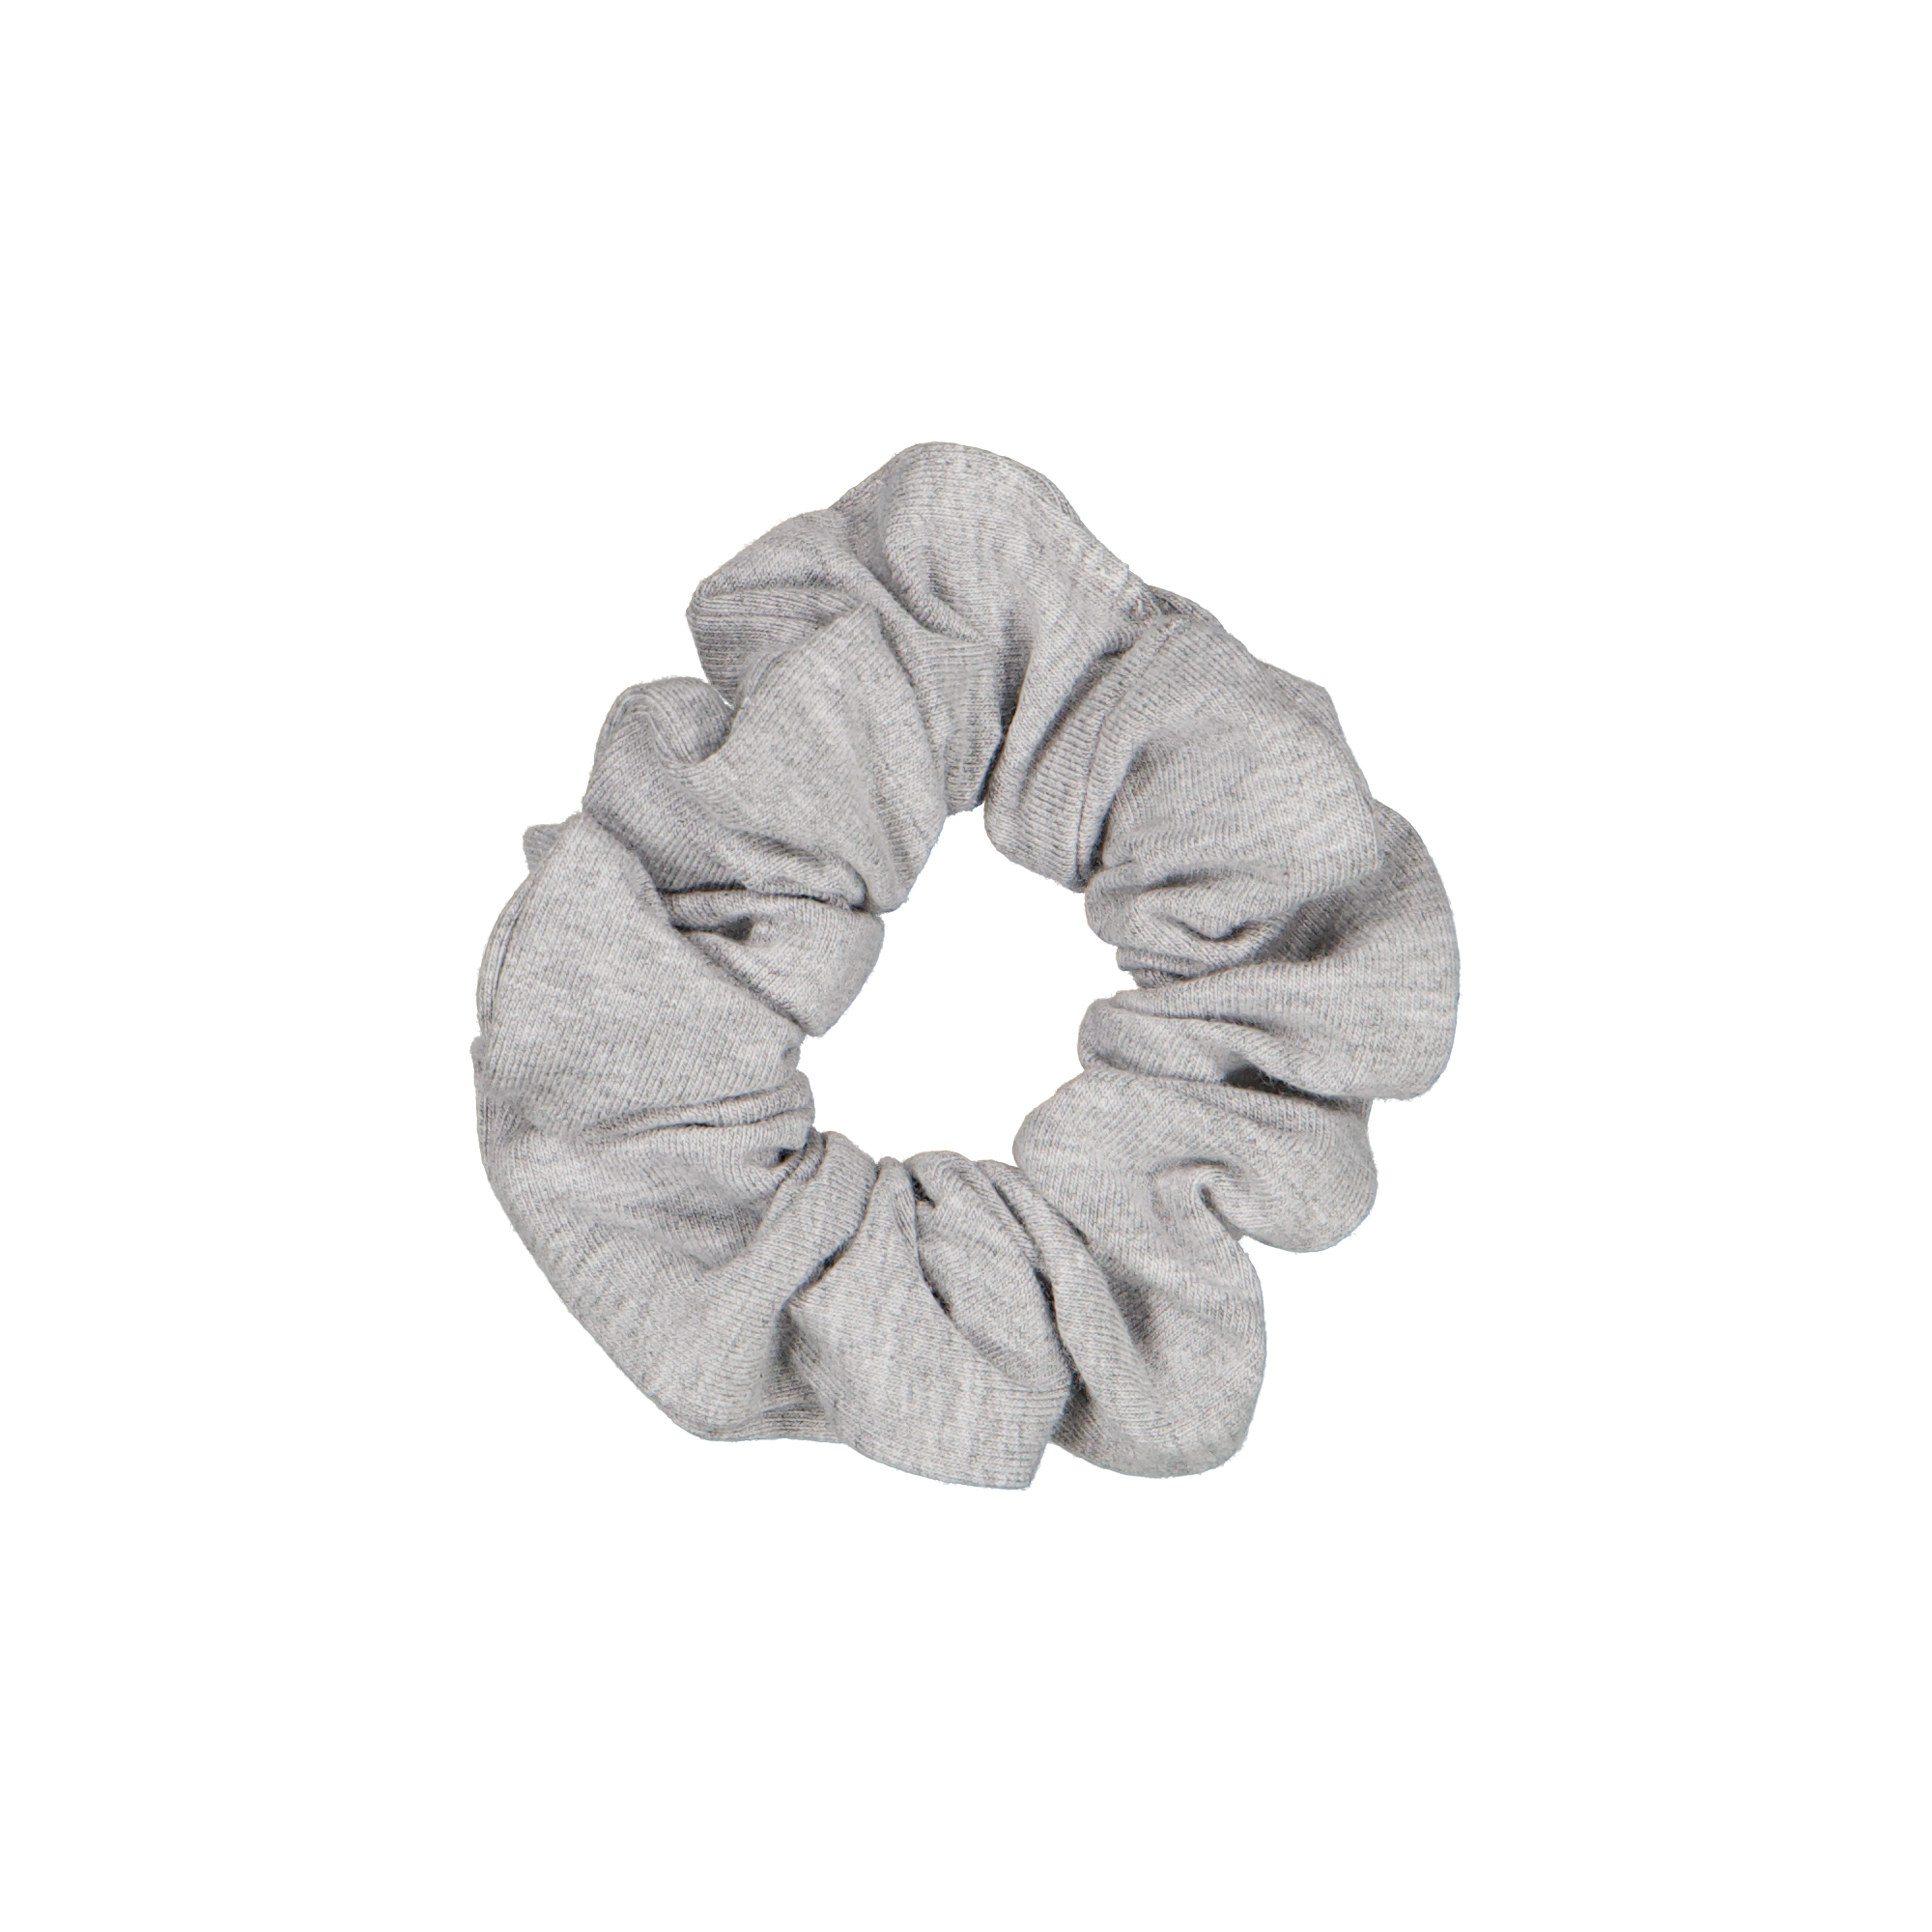 Scrunchie - Grey Melange (Large)